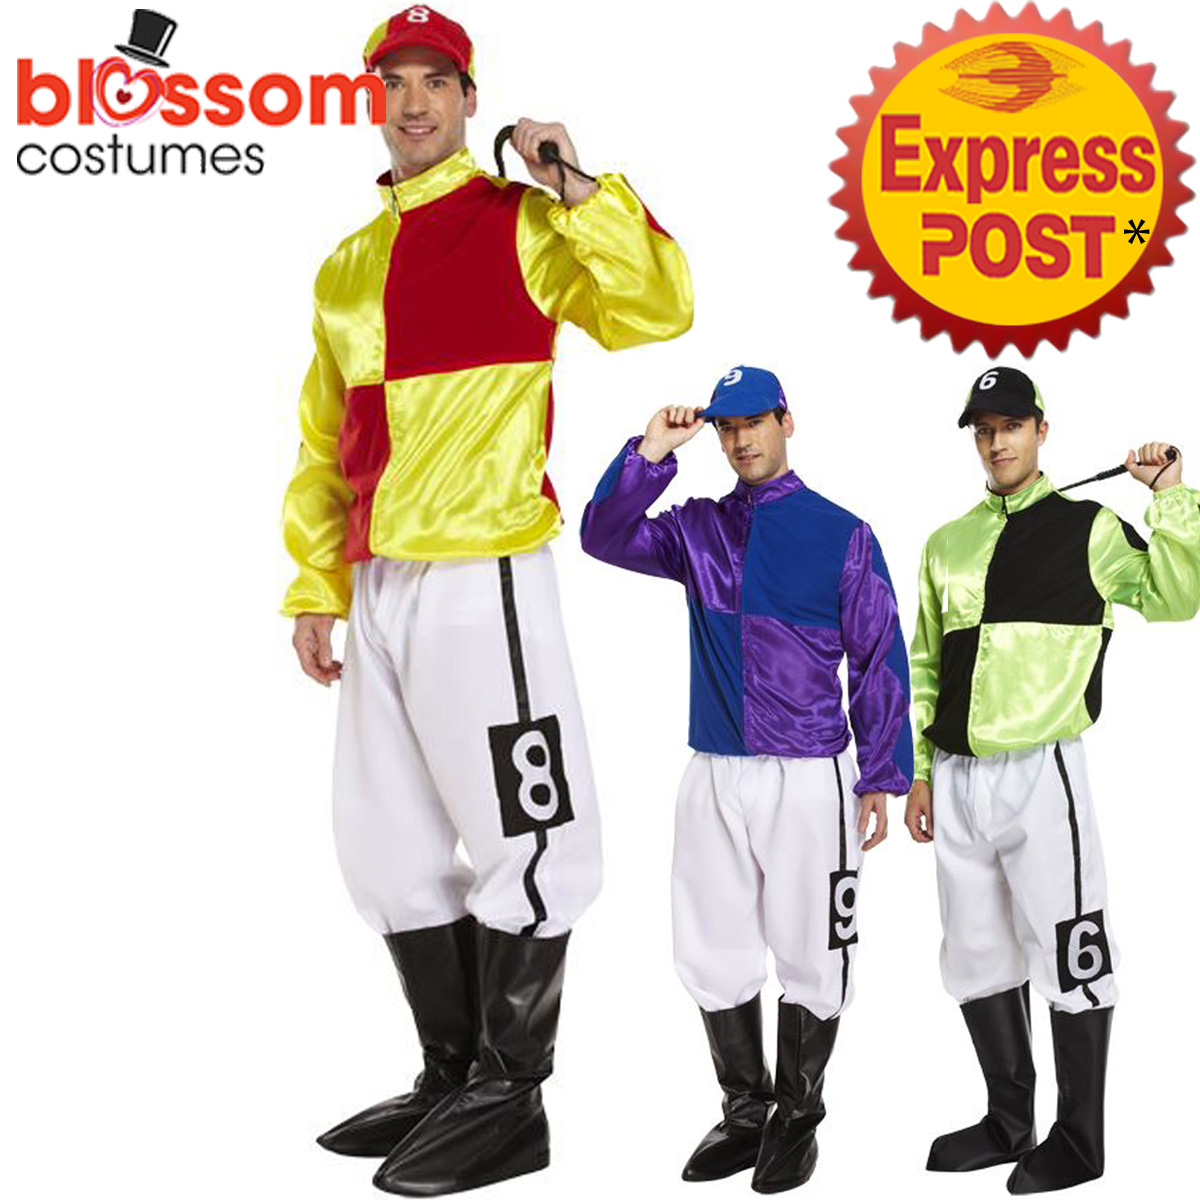 K389-Jockey-Horse-Rider-Mens-Uniform-Fancy-Dress-Up-Sports-Melbourne-Cup-Costume